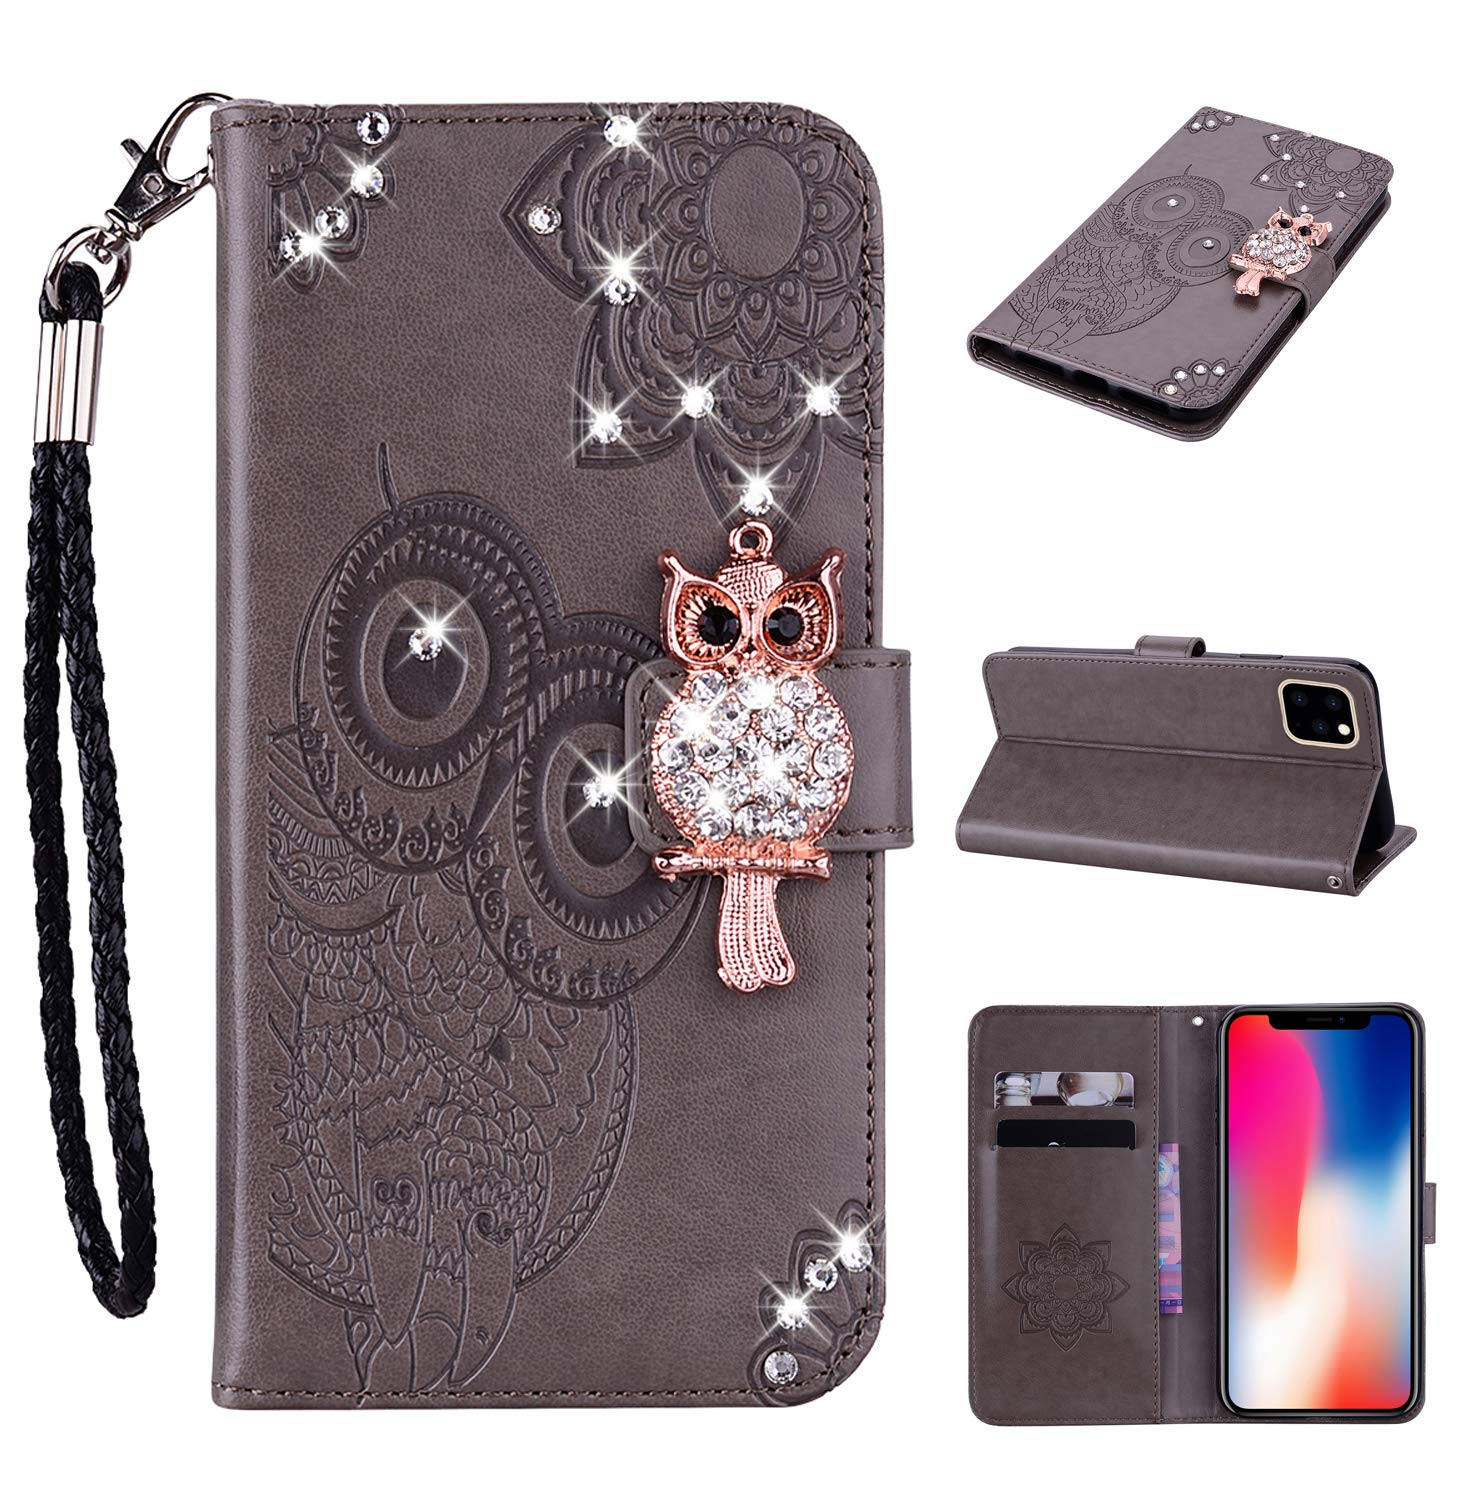 Amocase Wallet Case with 2 in 1 Stylus for iPhone 11 Pro Max 2019,3D Bling Gems Owl Magnetic Mandala Embossing Premium Strap PU Leather Card Slot Stand Case for iPhone 11 Pro Max 2019 - Gray by Amocase